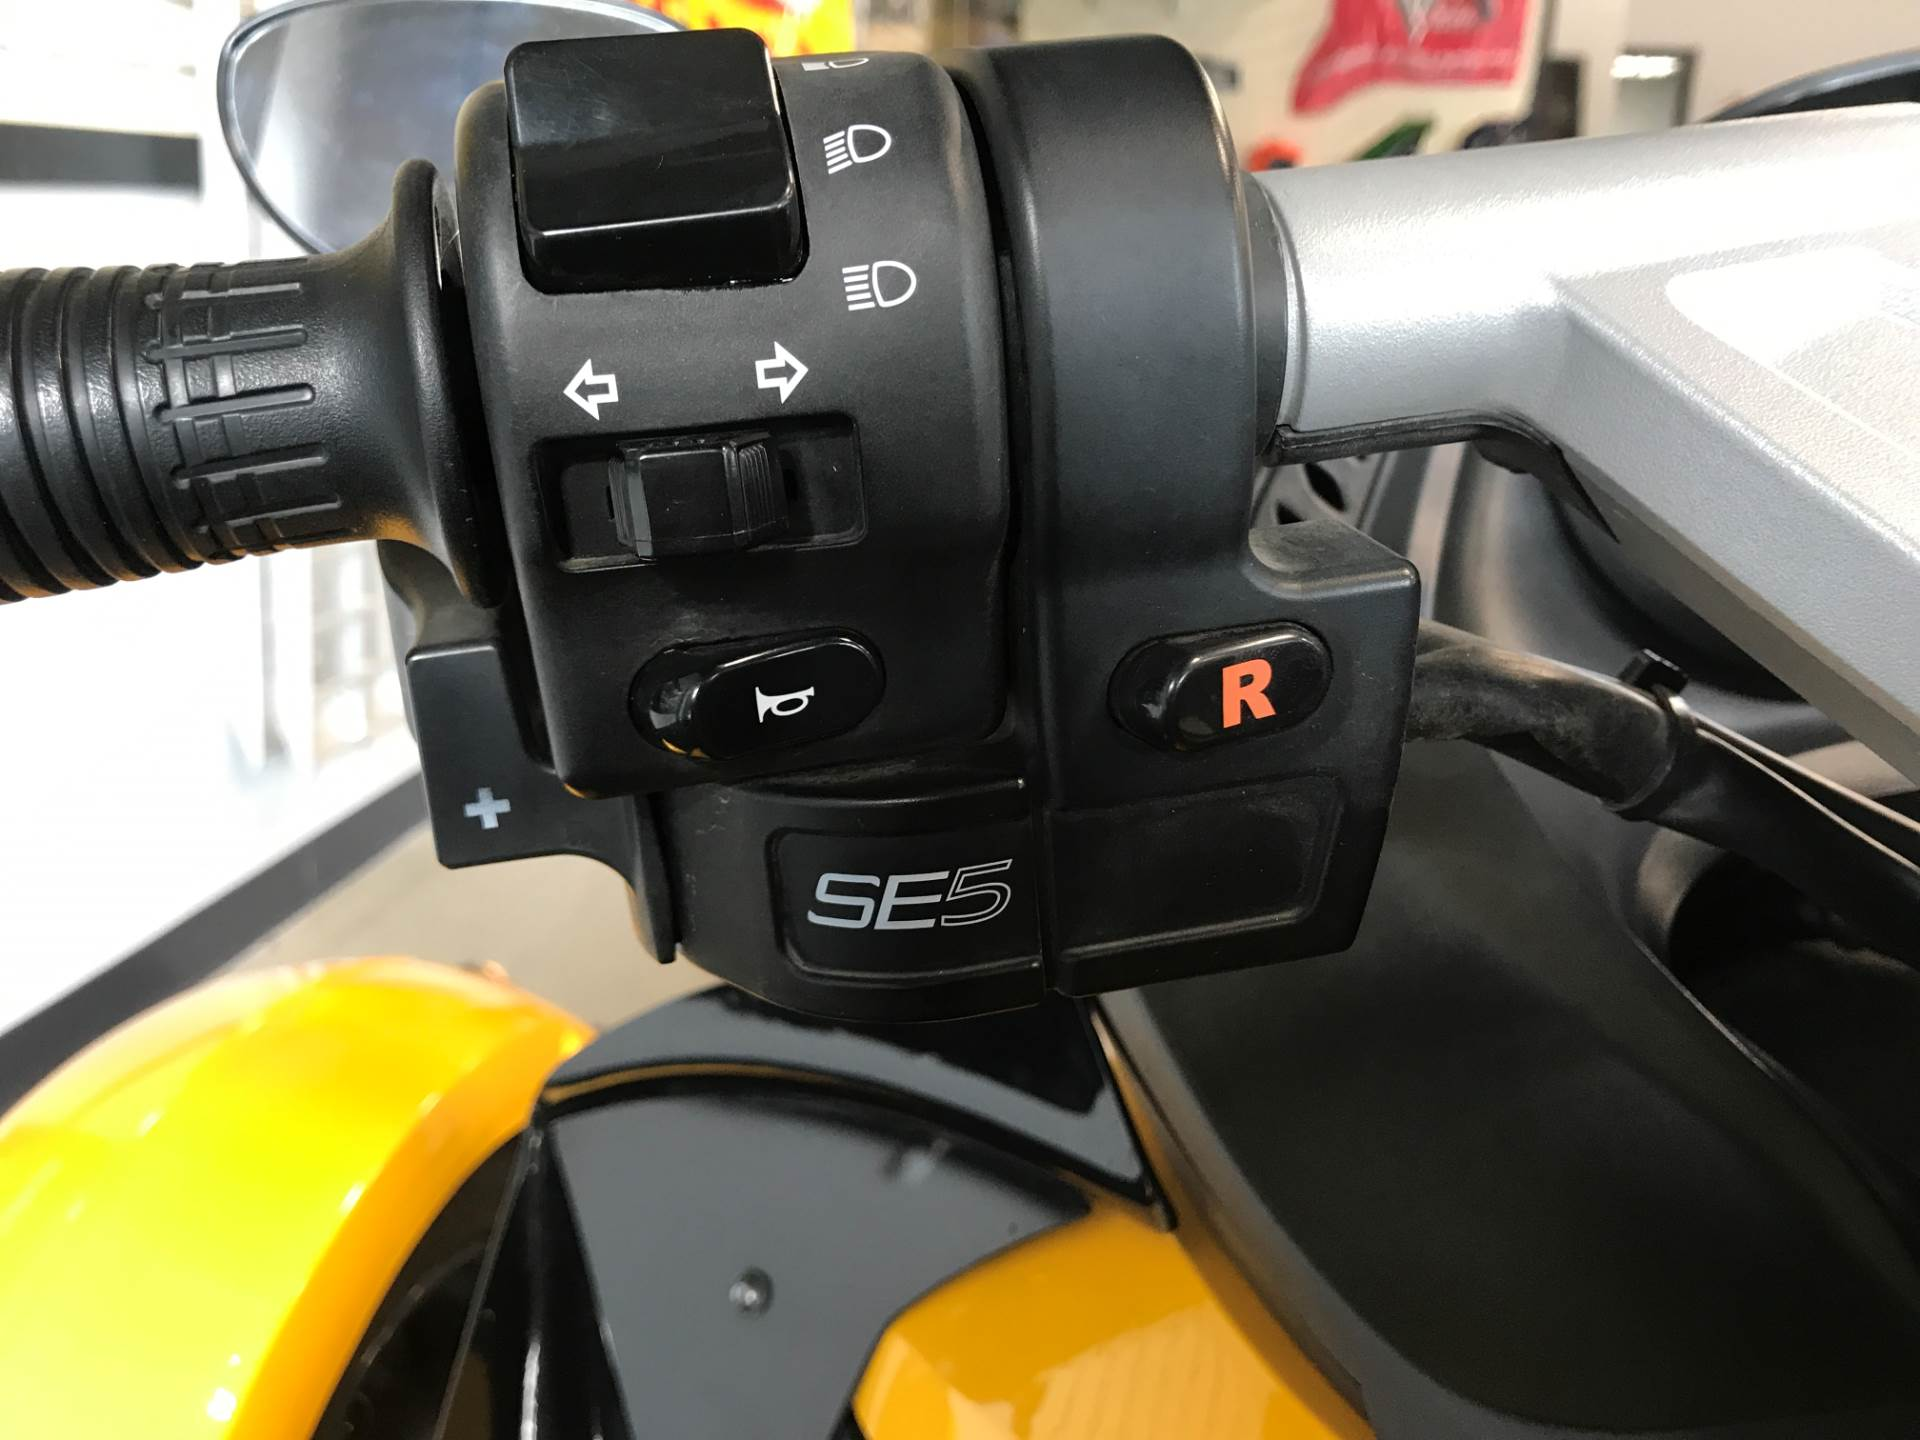 2009 Can-Am Spyder™ GS Roadster with SE5 Transmission (semi auto) in Brighton, Michigan